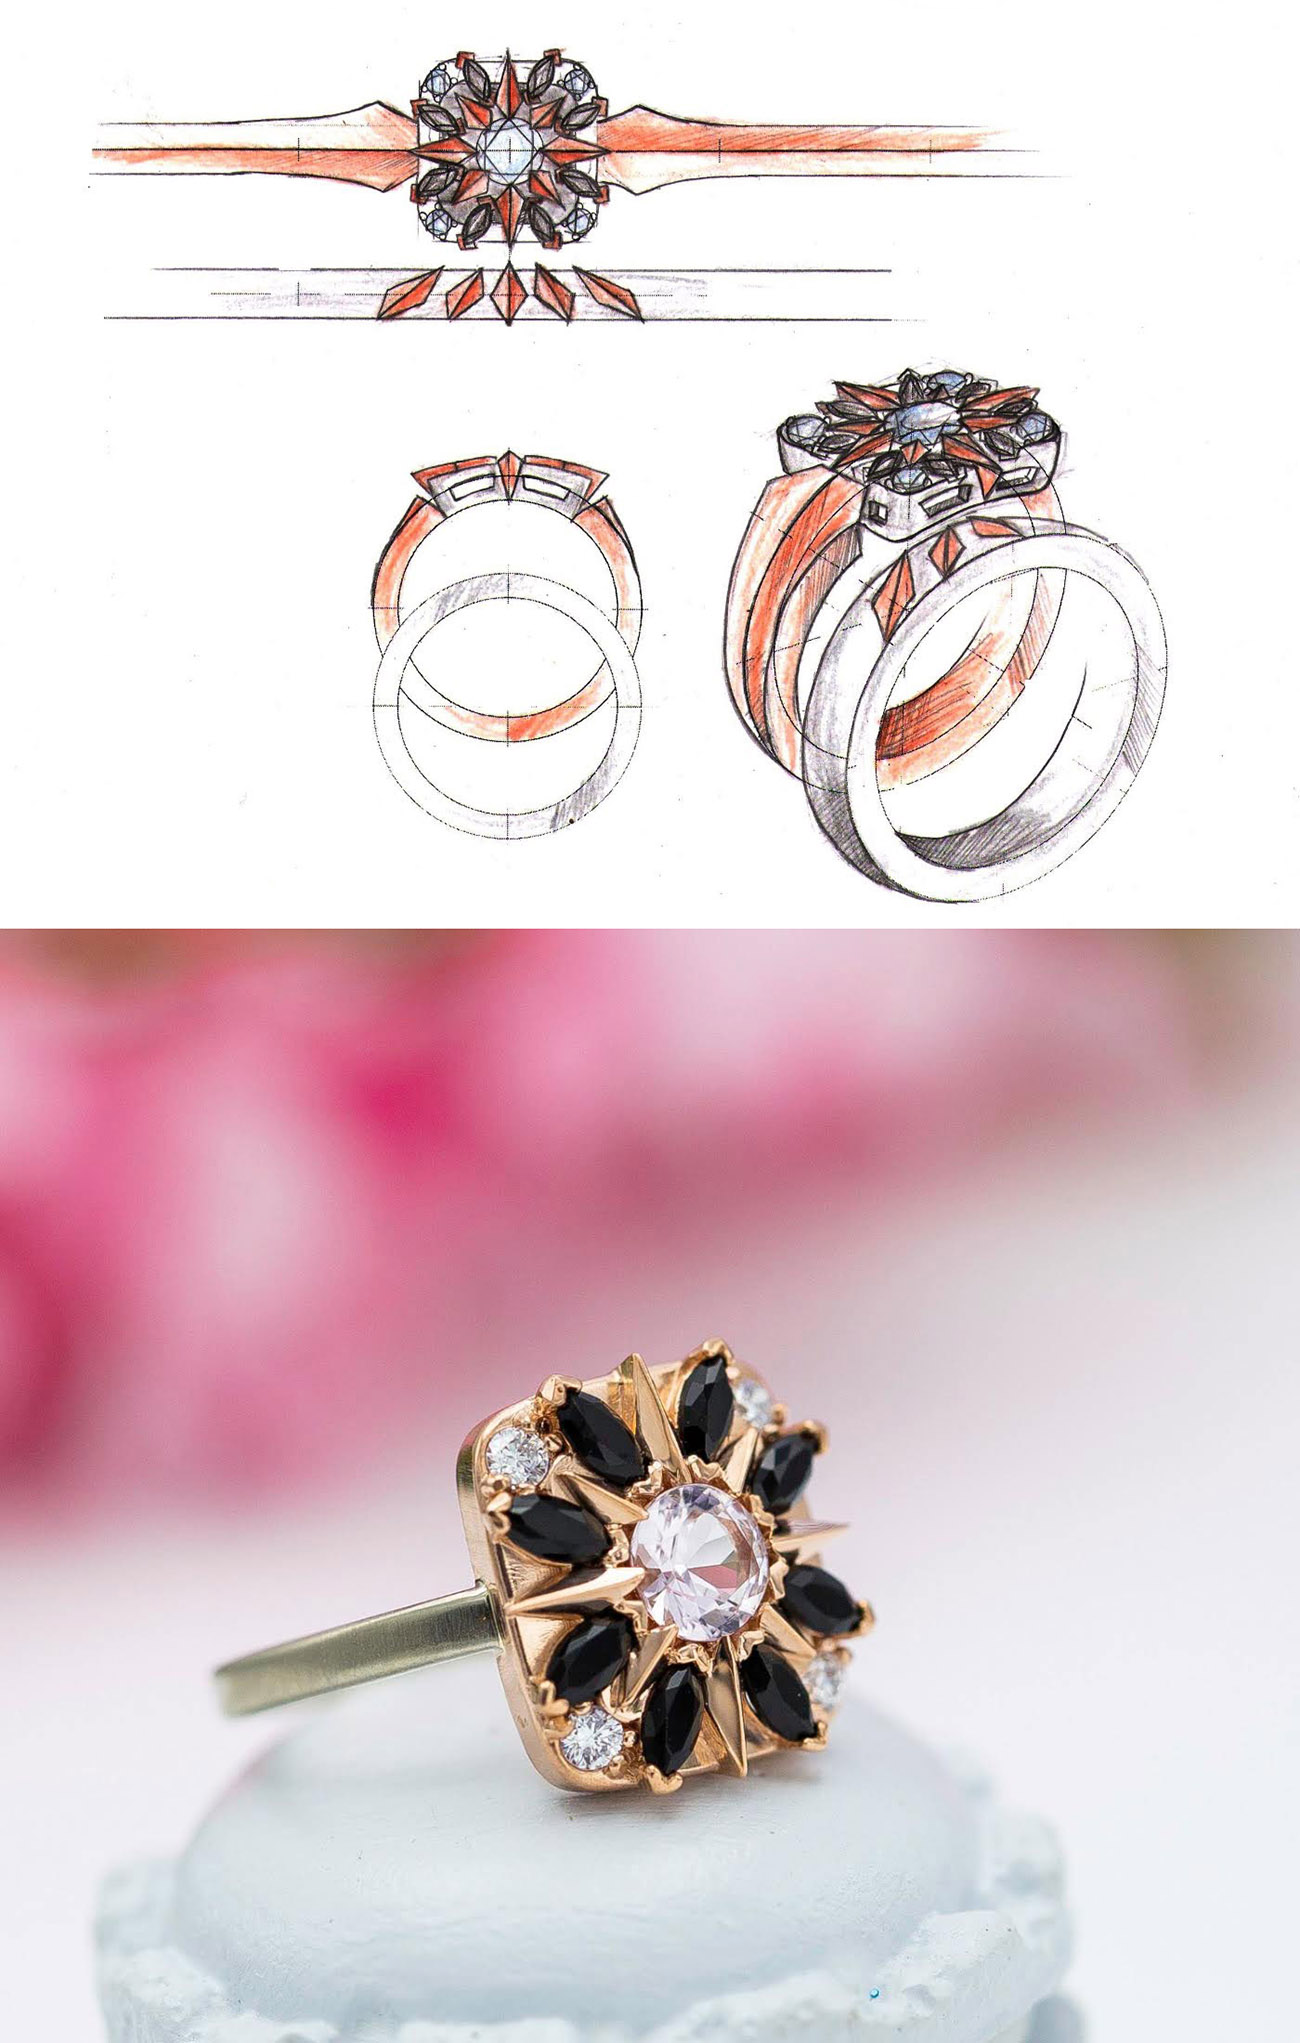 CustomMade engagement ring inspired by the compass rose